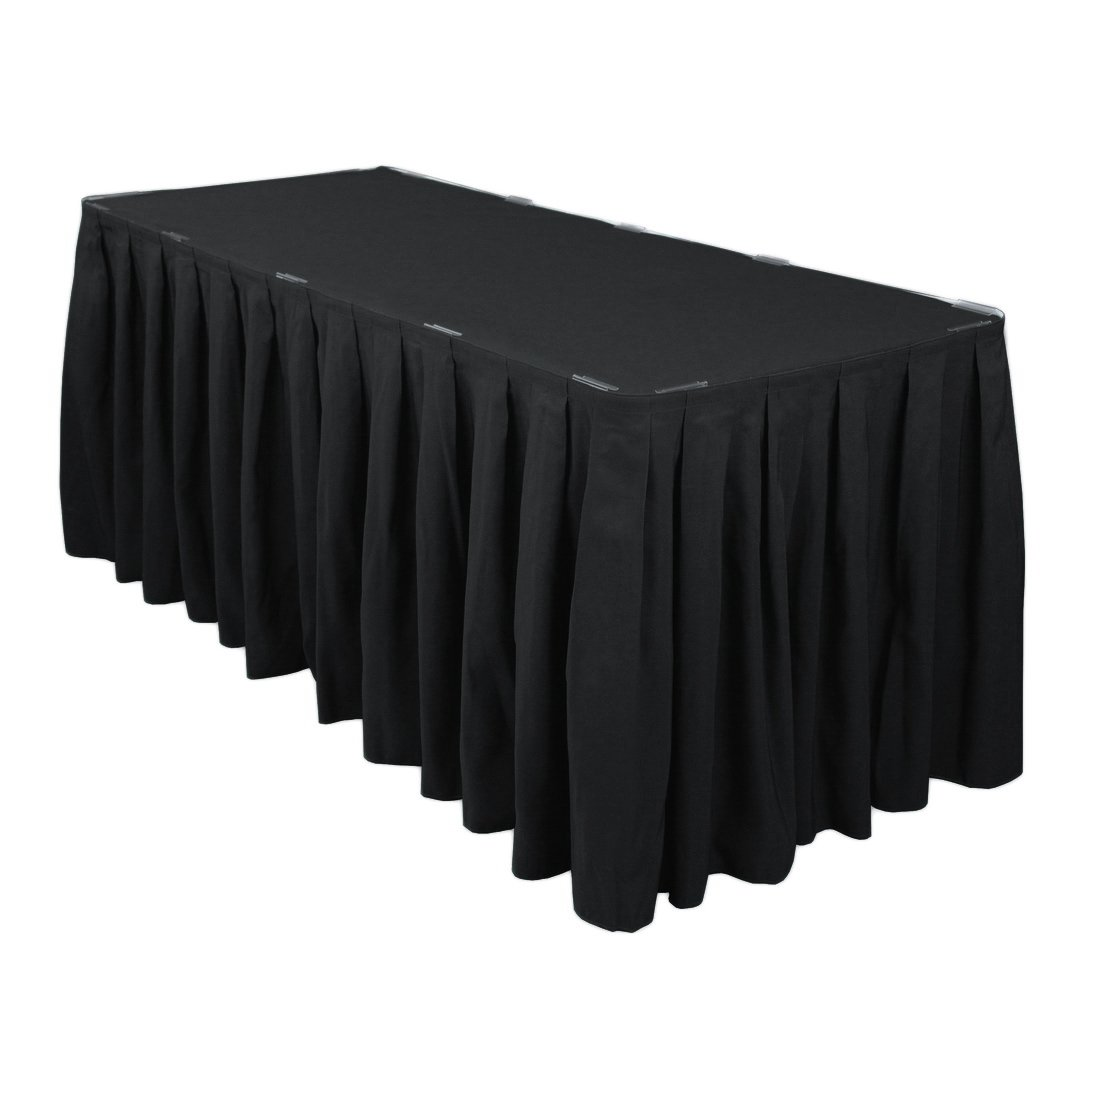 LinenTablecloth 17 ft Accordion Pleat Polyester Table Skirt Black